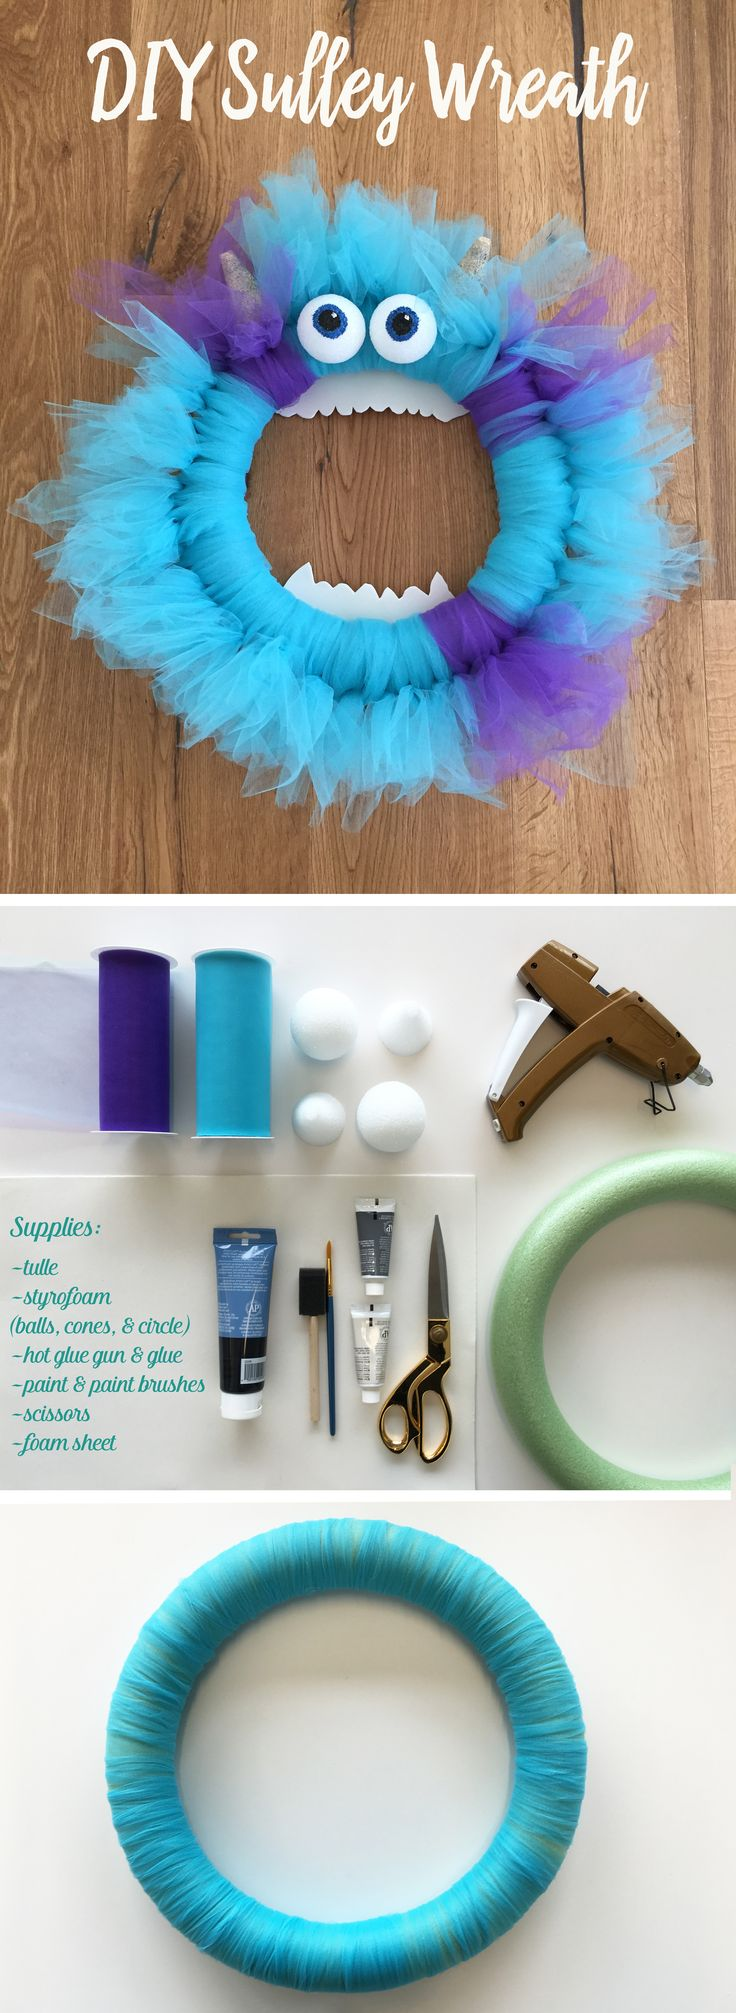 This DIY Sulley Wreath will bring a little bit of Disney magic right to your door. This Monsters Inc. craft is quick and easy to make, and fun for kids and the whole family! All you need is tulle, styrofoam, hot glue, paint, paint brush, scissors, and foam sheets. #DisneyDIY